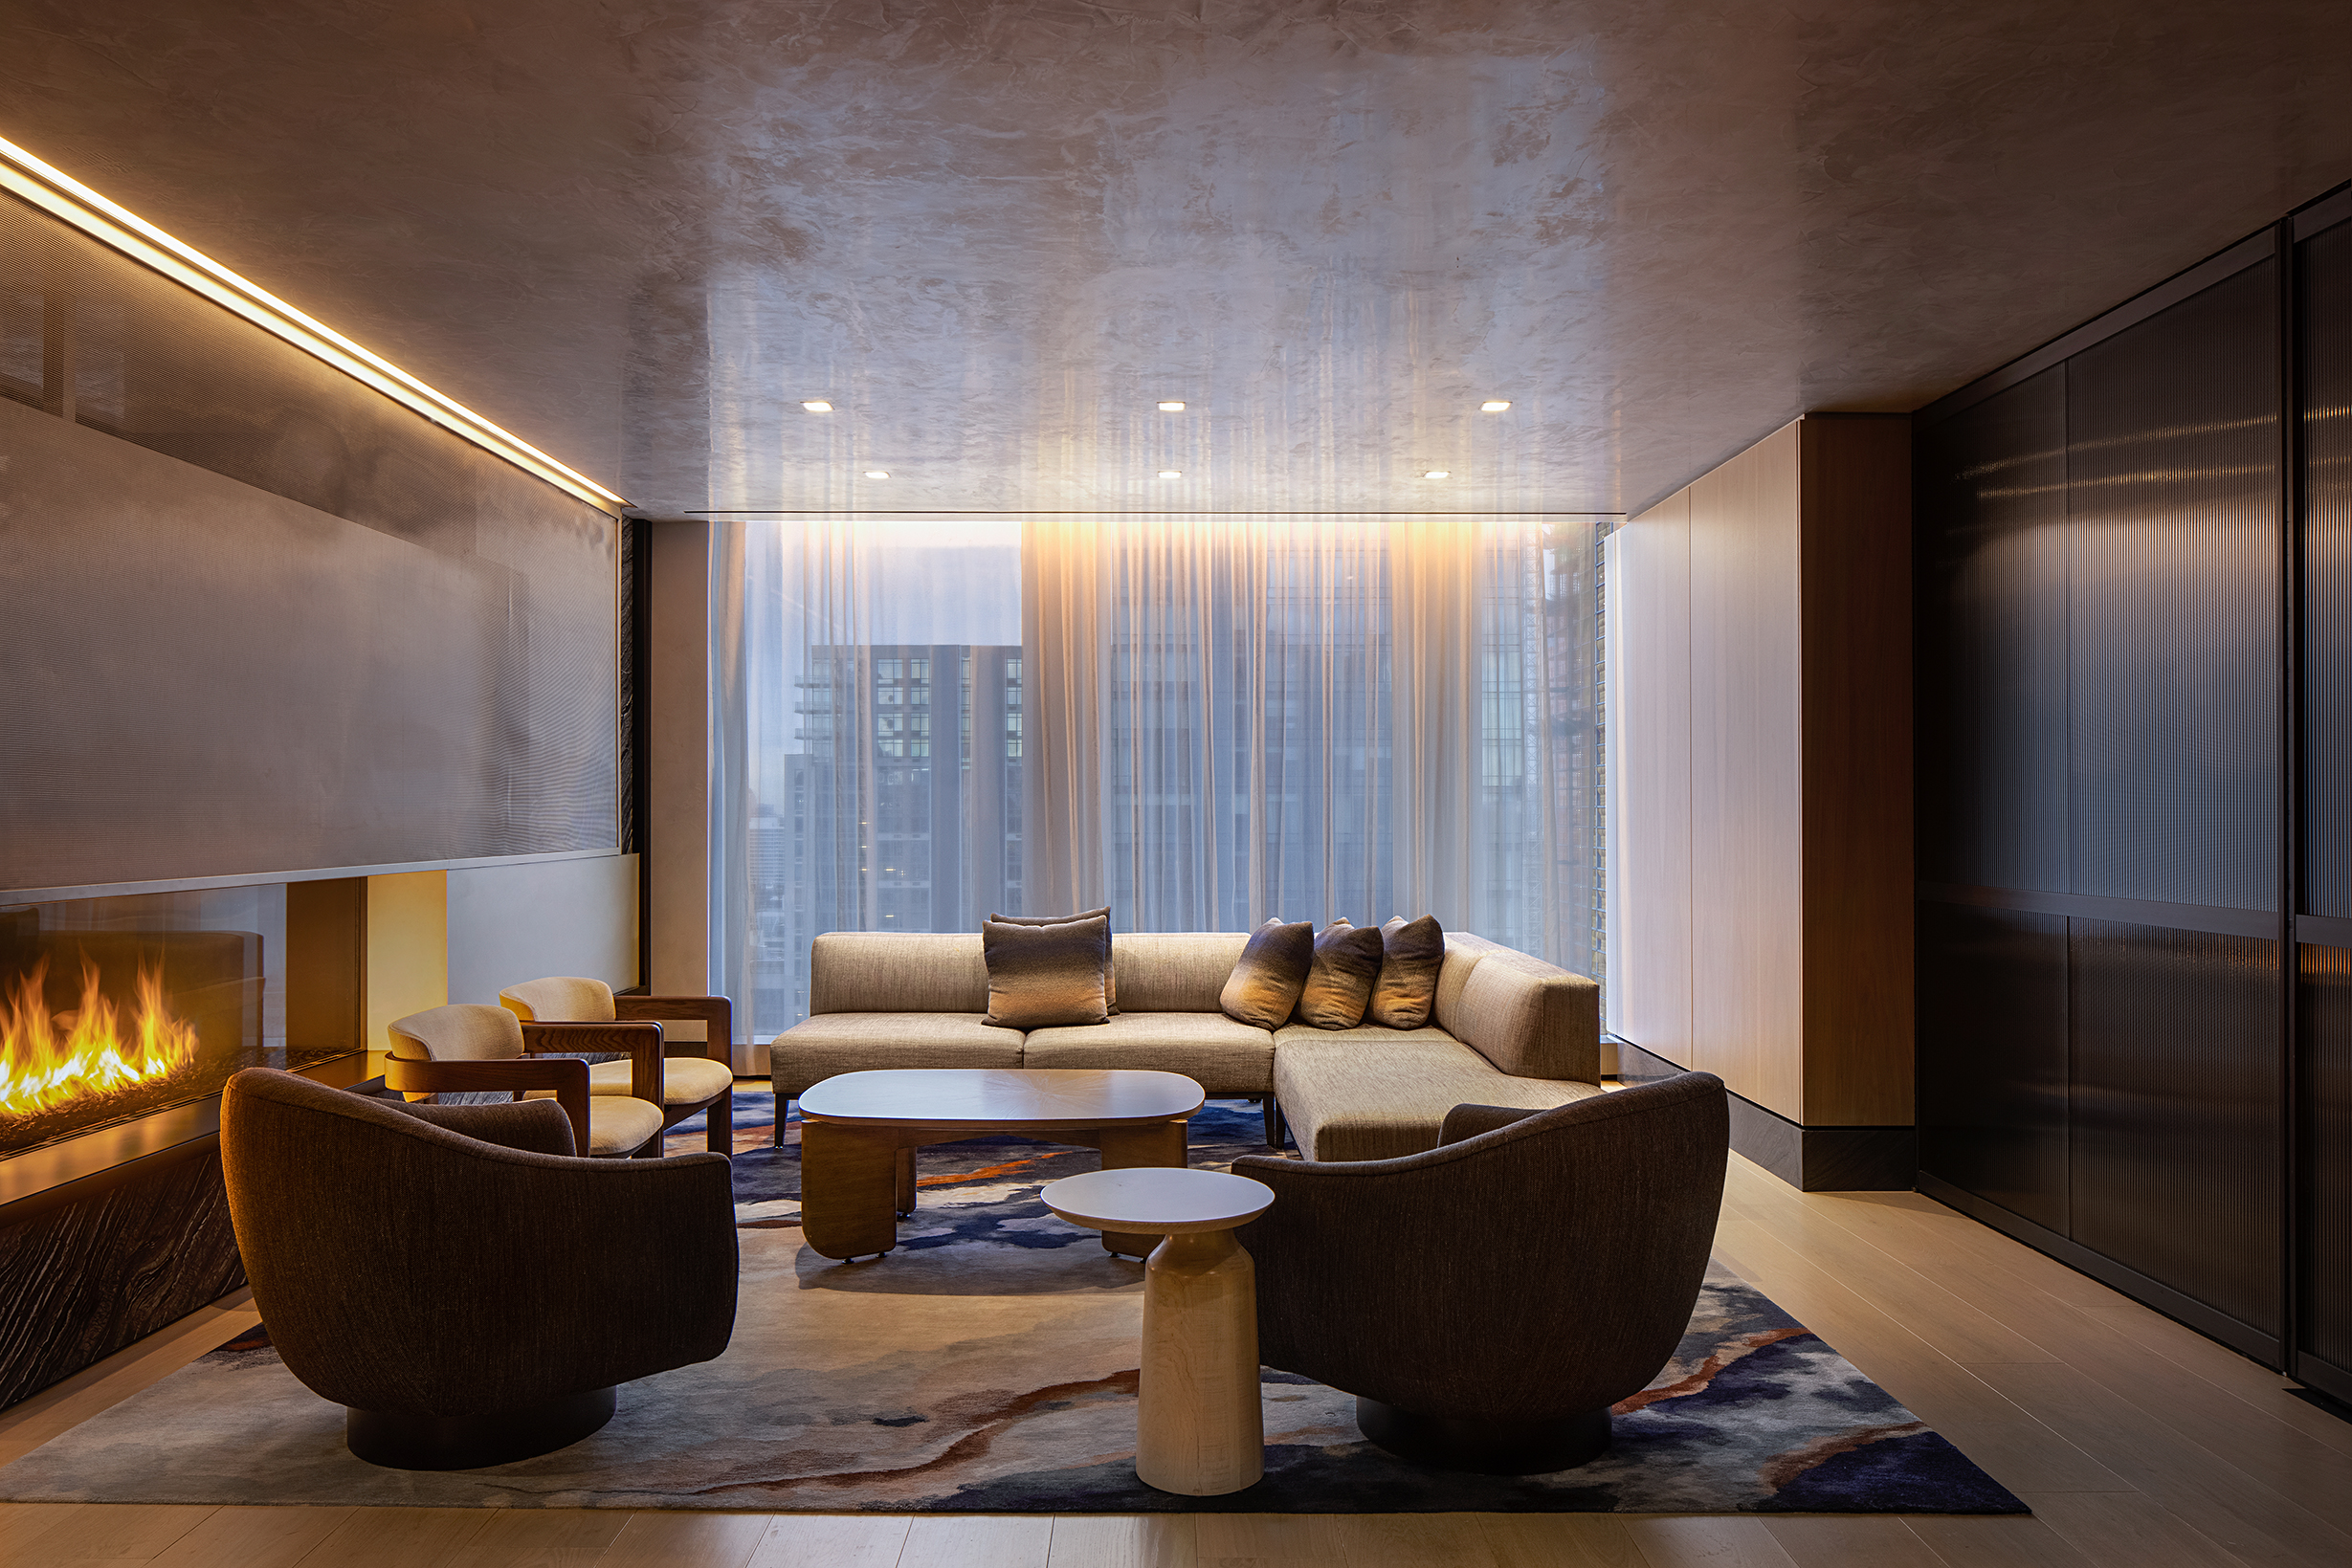 <Private lounge area with fireplace